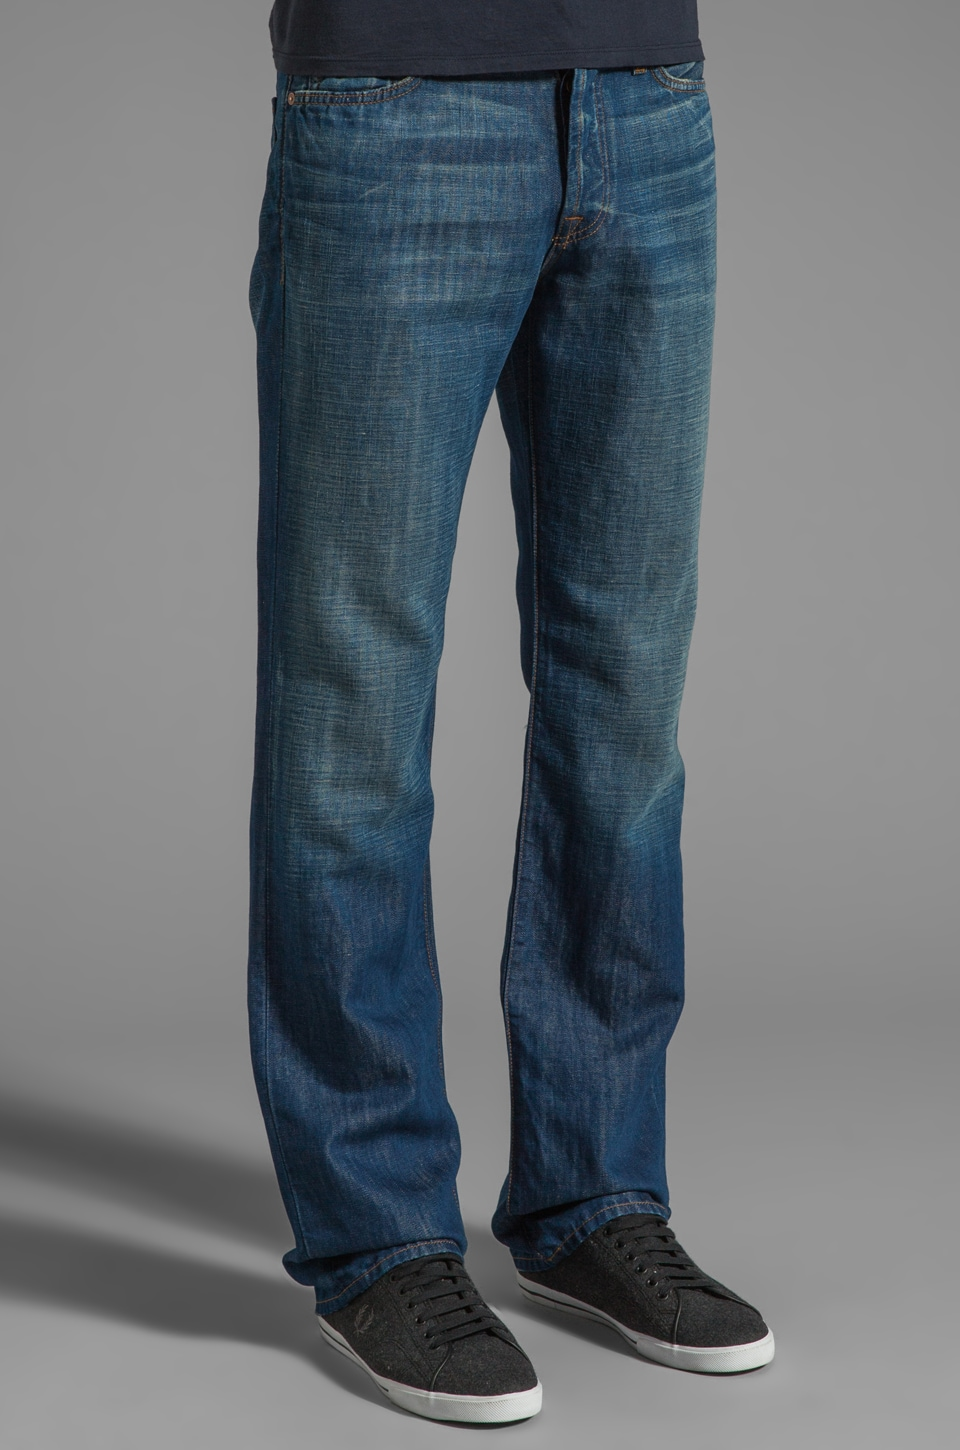 7 For All Mankind The Standard in Cotton Linen Indigo